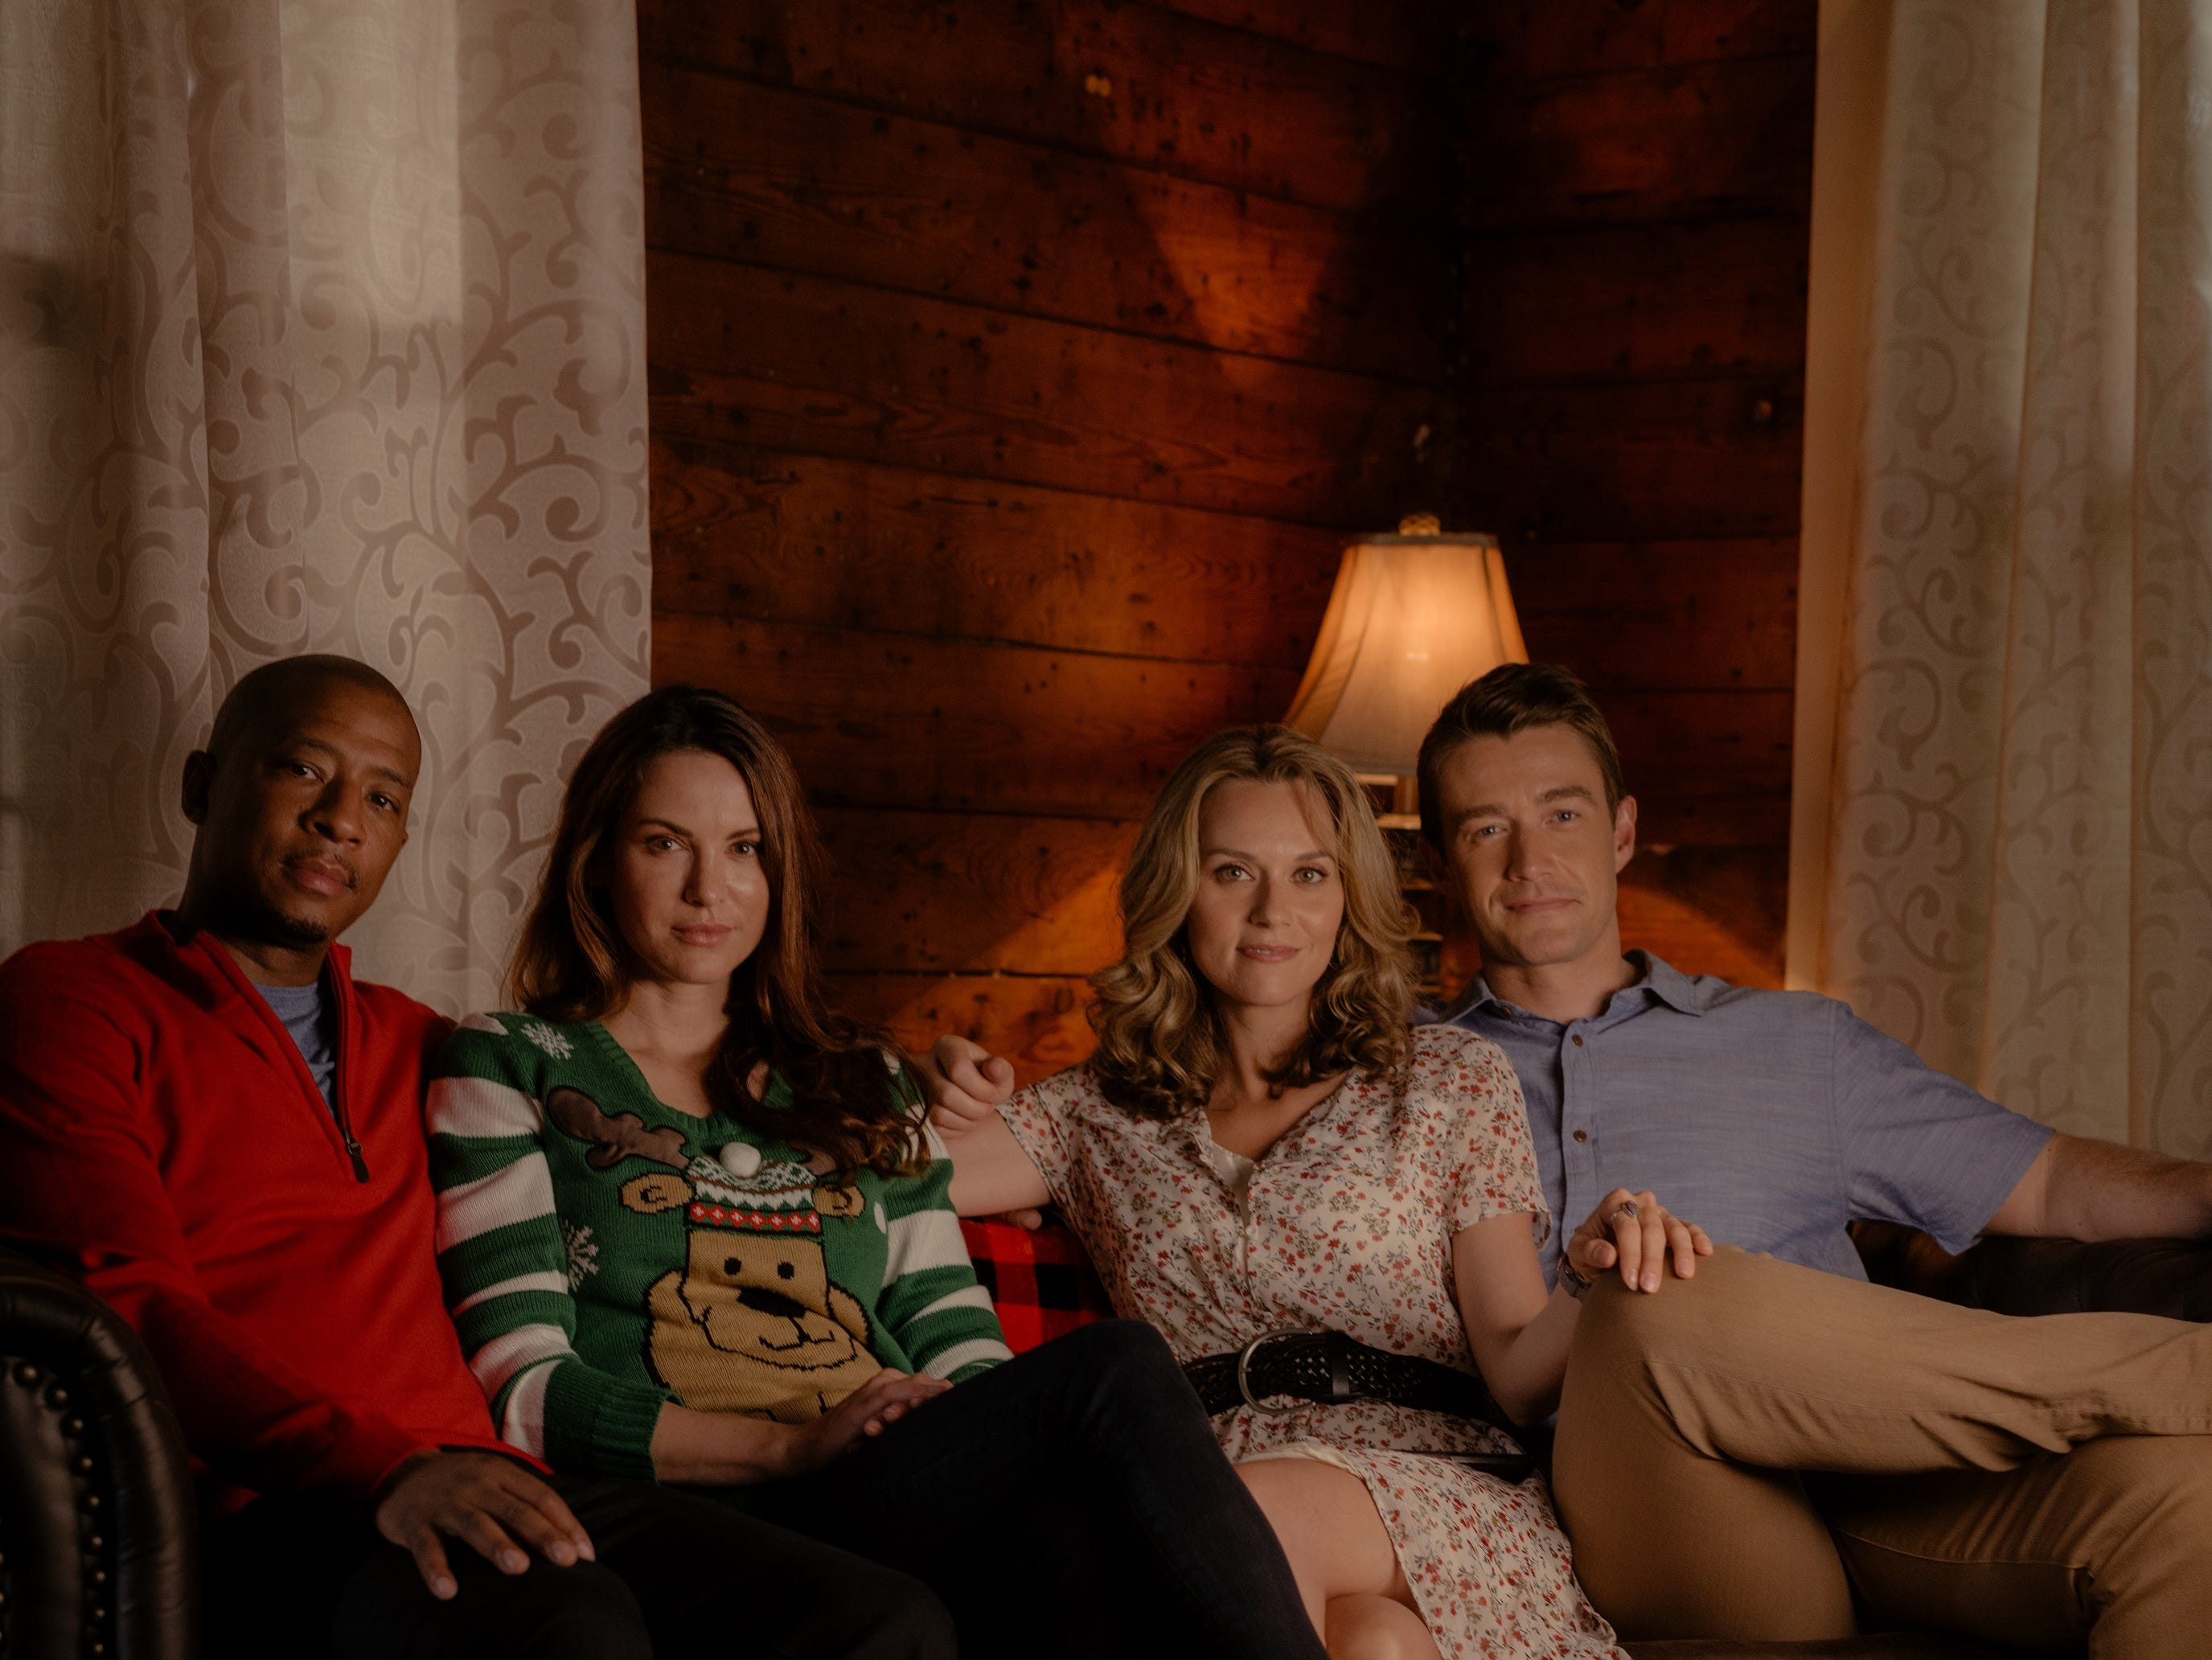 """""""The Christmas Contract"""" (Lifetime, Nov. 22, 8 EST/PST): Starring """"One Tree Hill alums Antwon Tanner, Danneel Ackles, Hilarie Burton and Robert Buckley, the movie follows Jolie (Burton) who asks Jack (Buckley) to be her fake boyfriend when she goes home for Christmas."""